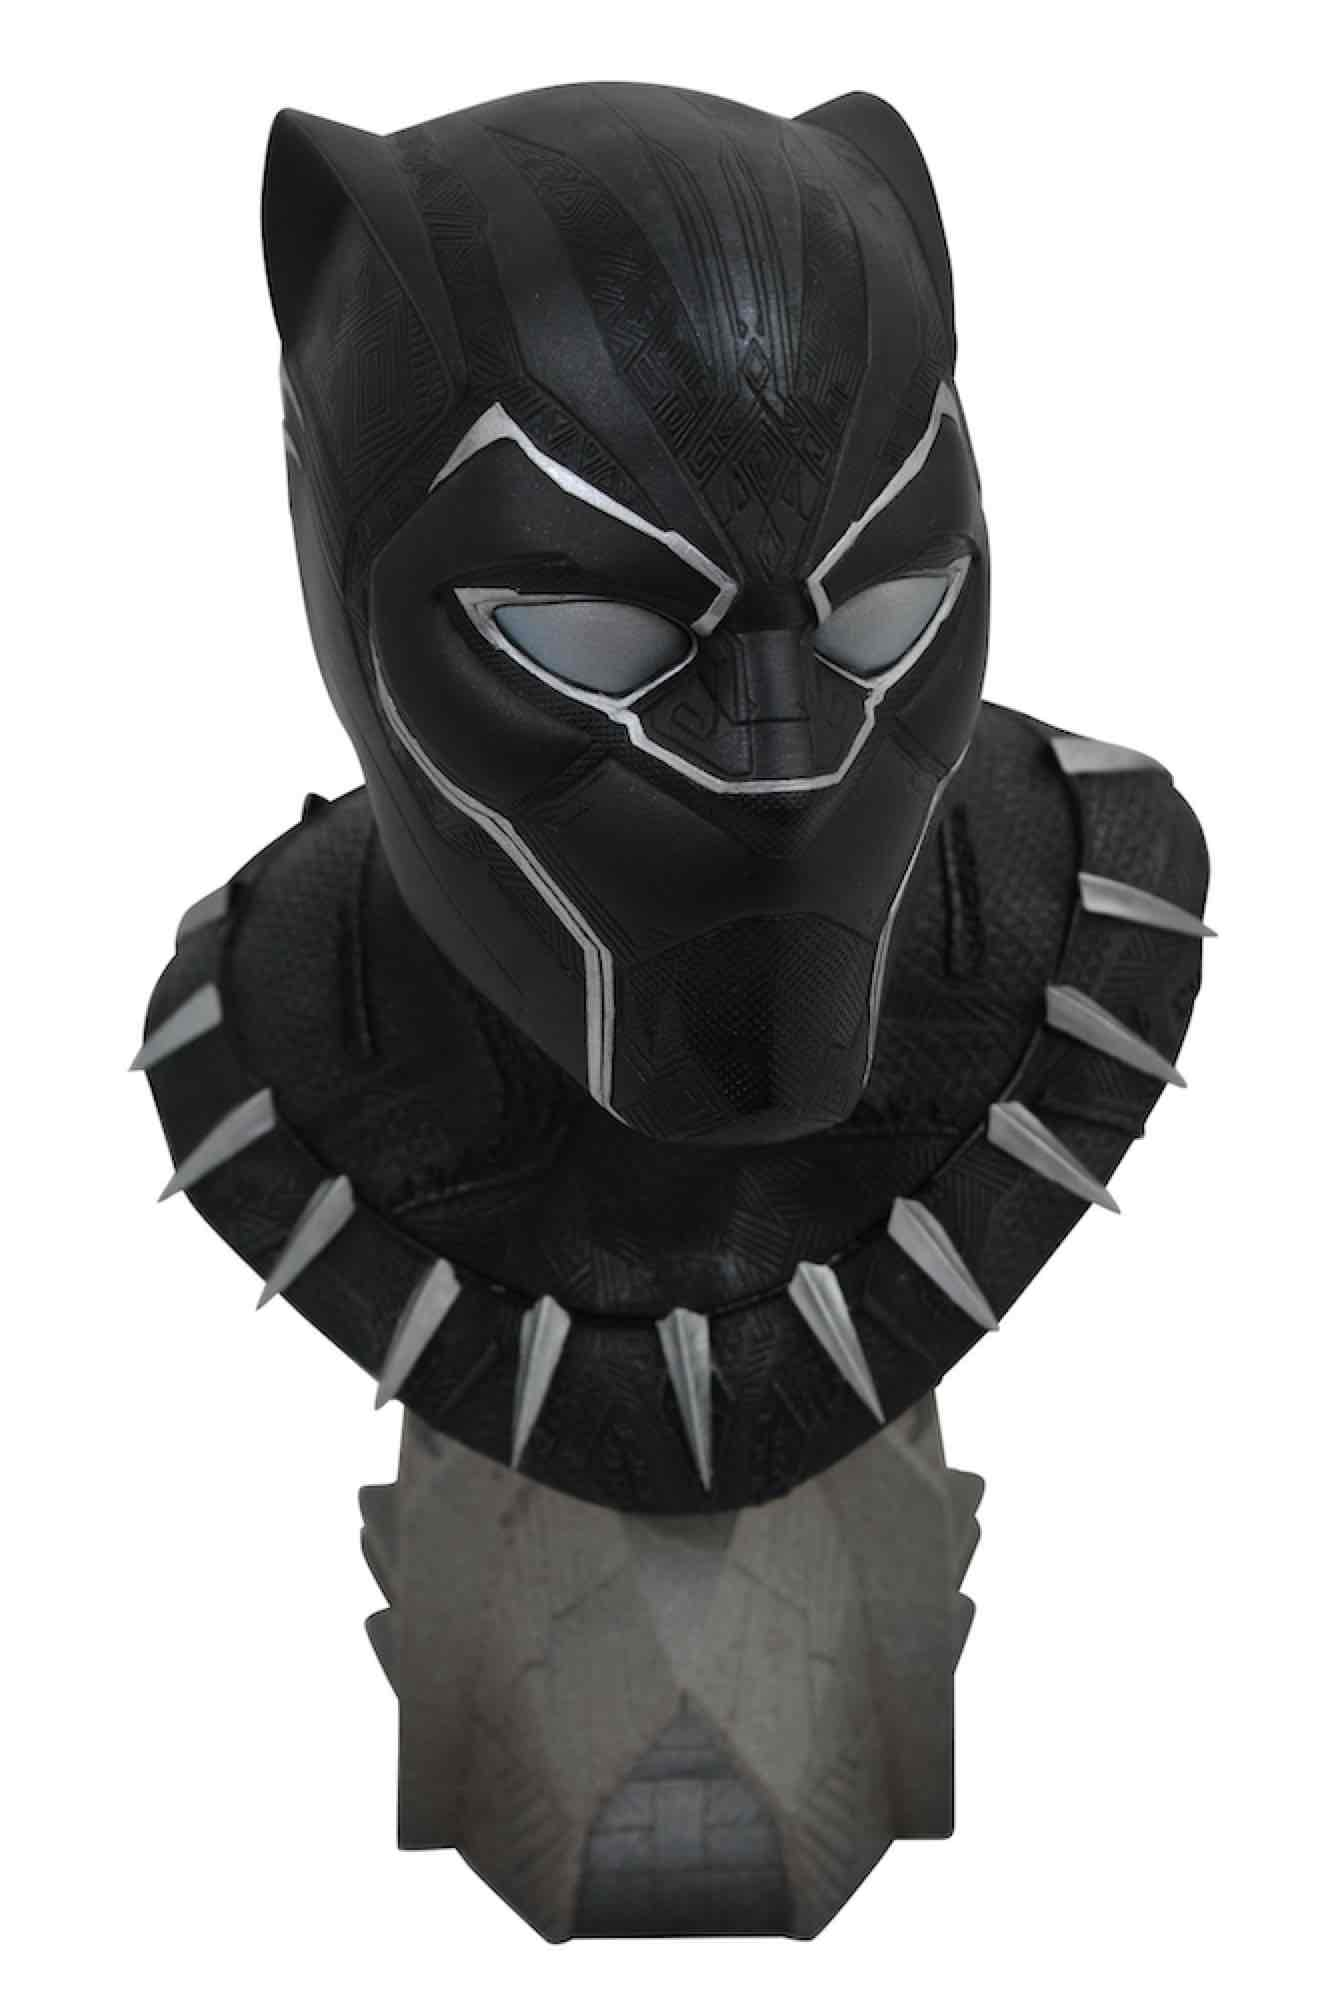 BLACK PANTHER BUSTO RESINA 25 CM 1/2 SCALE LEGENDS IN 3D MARVEL COMICS